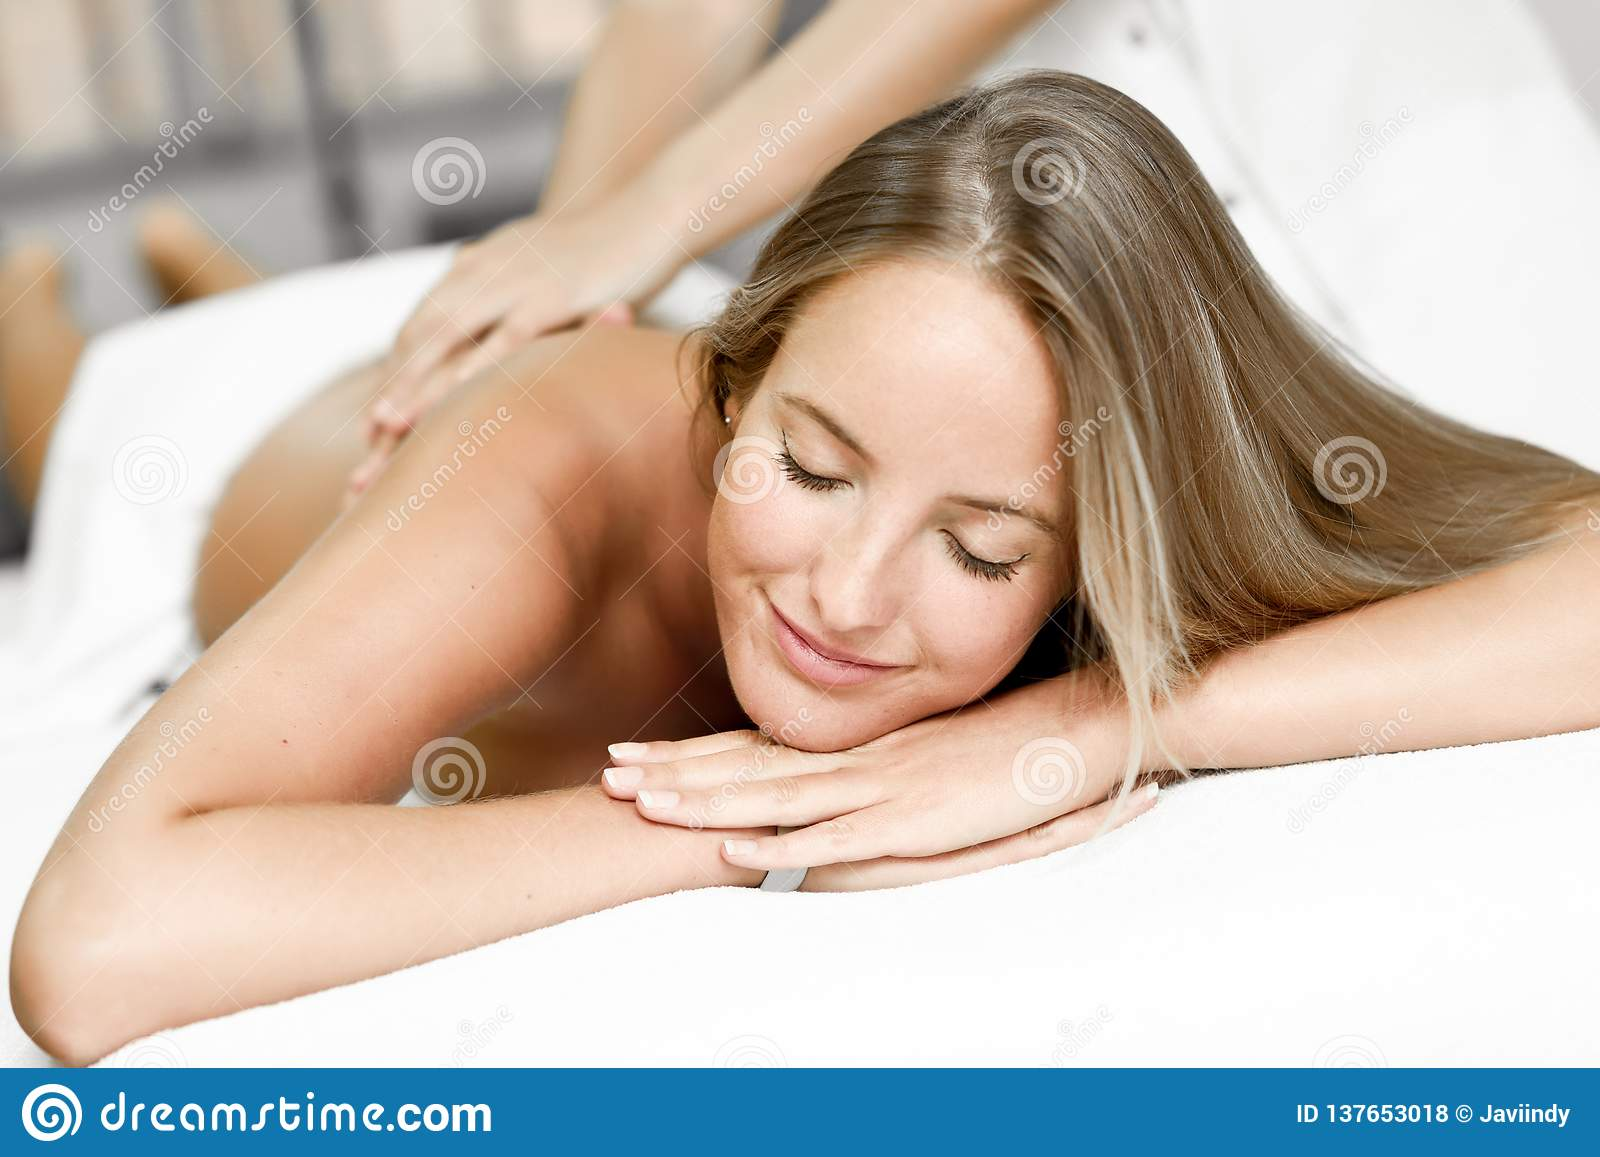 Young Blond Women Having Massage In The Spa Salon Massage And Body Care Body Massage Treatment Smiling Female